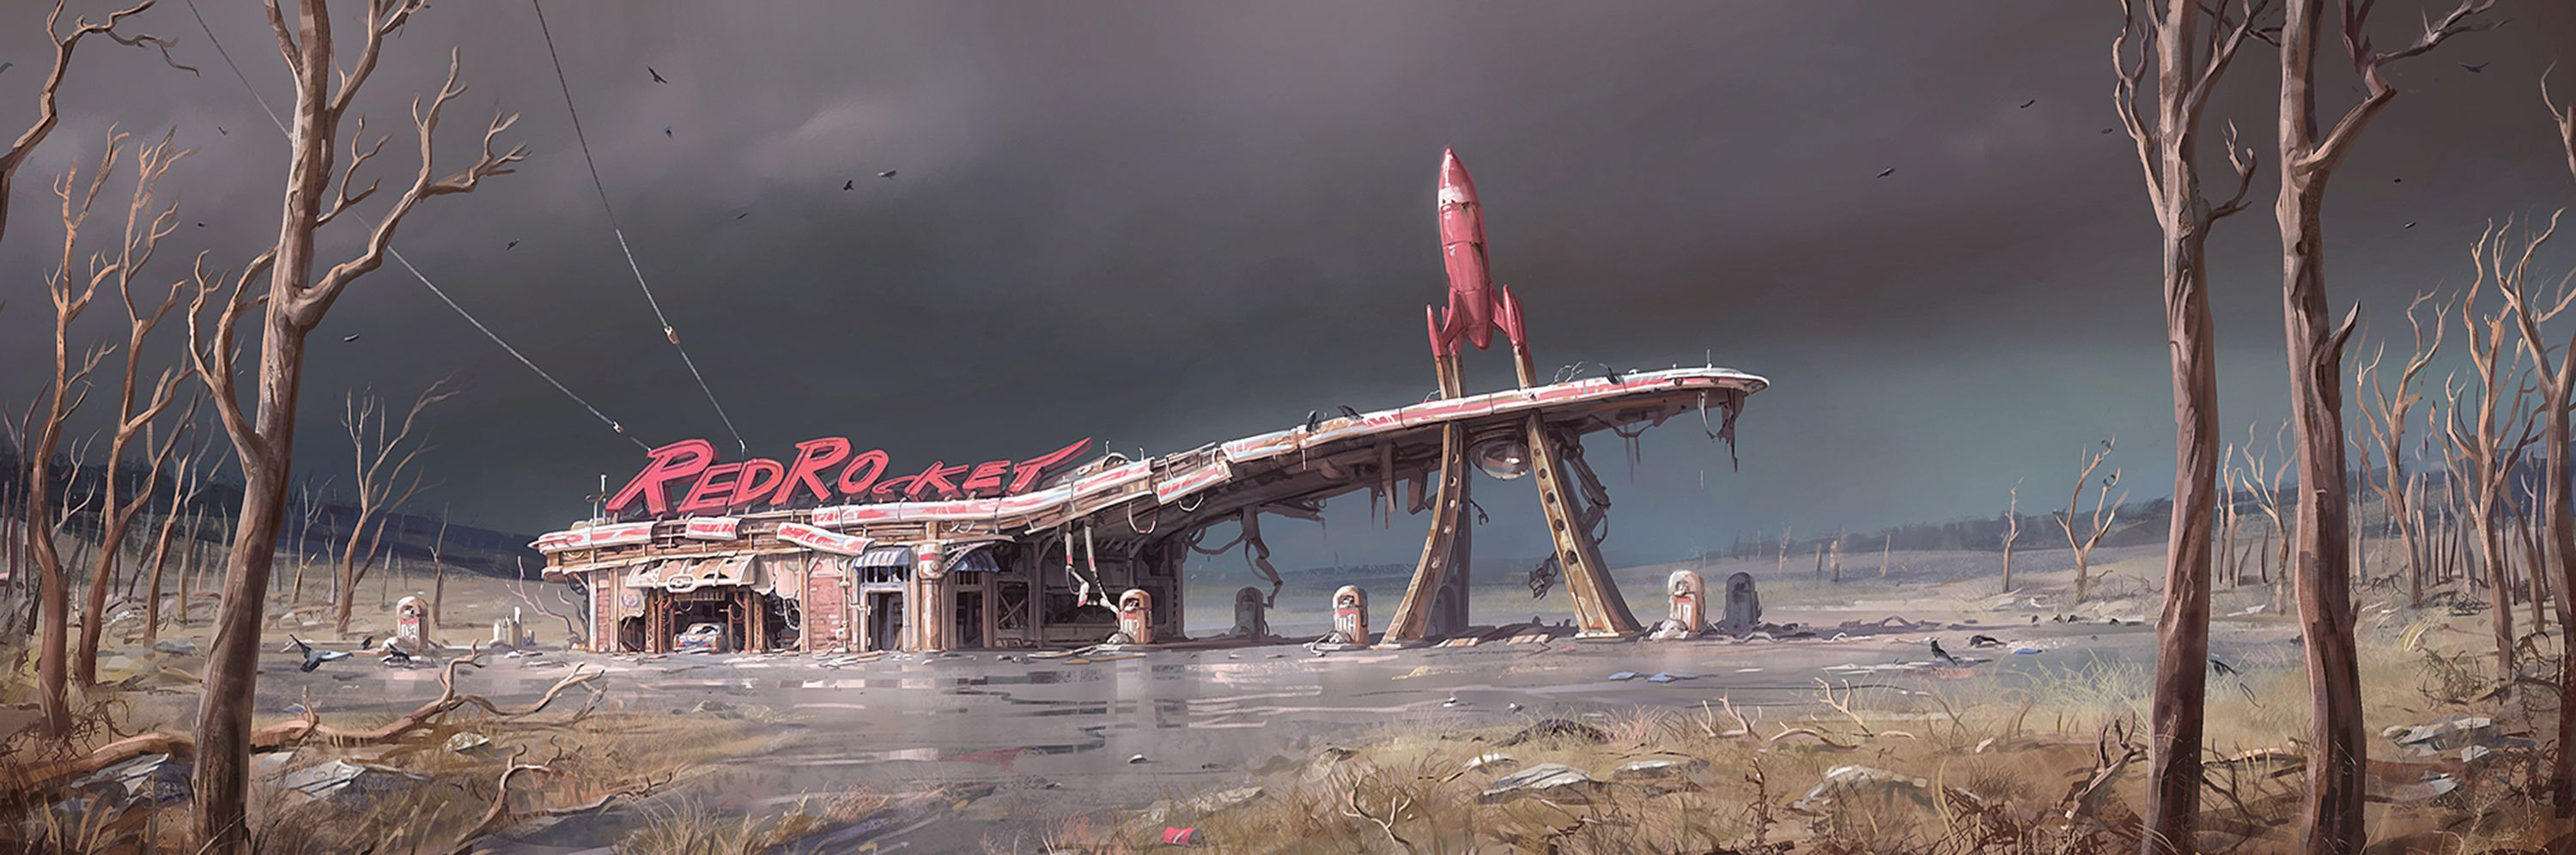 Fallout 4 concept art picture redrocket бар